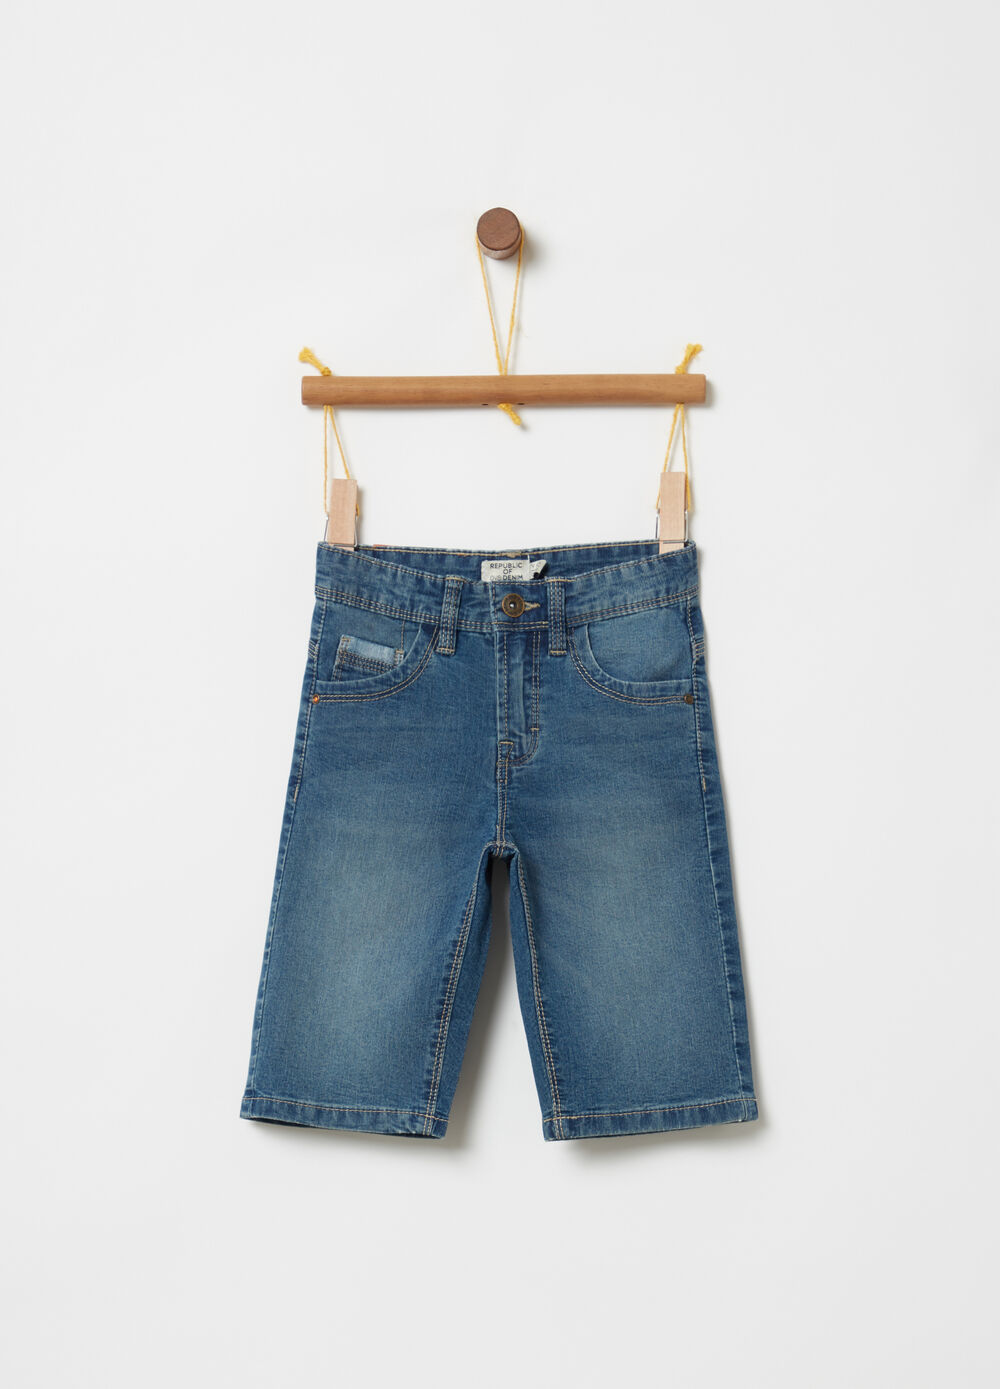 Stretch denim shorts with functional pockets